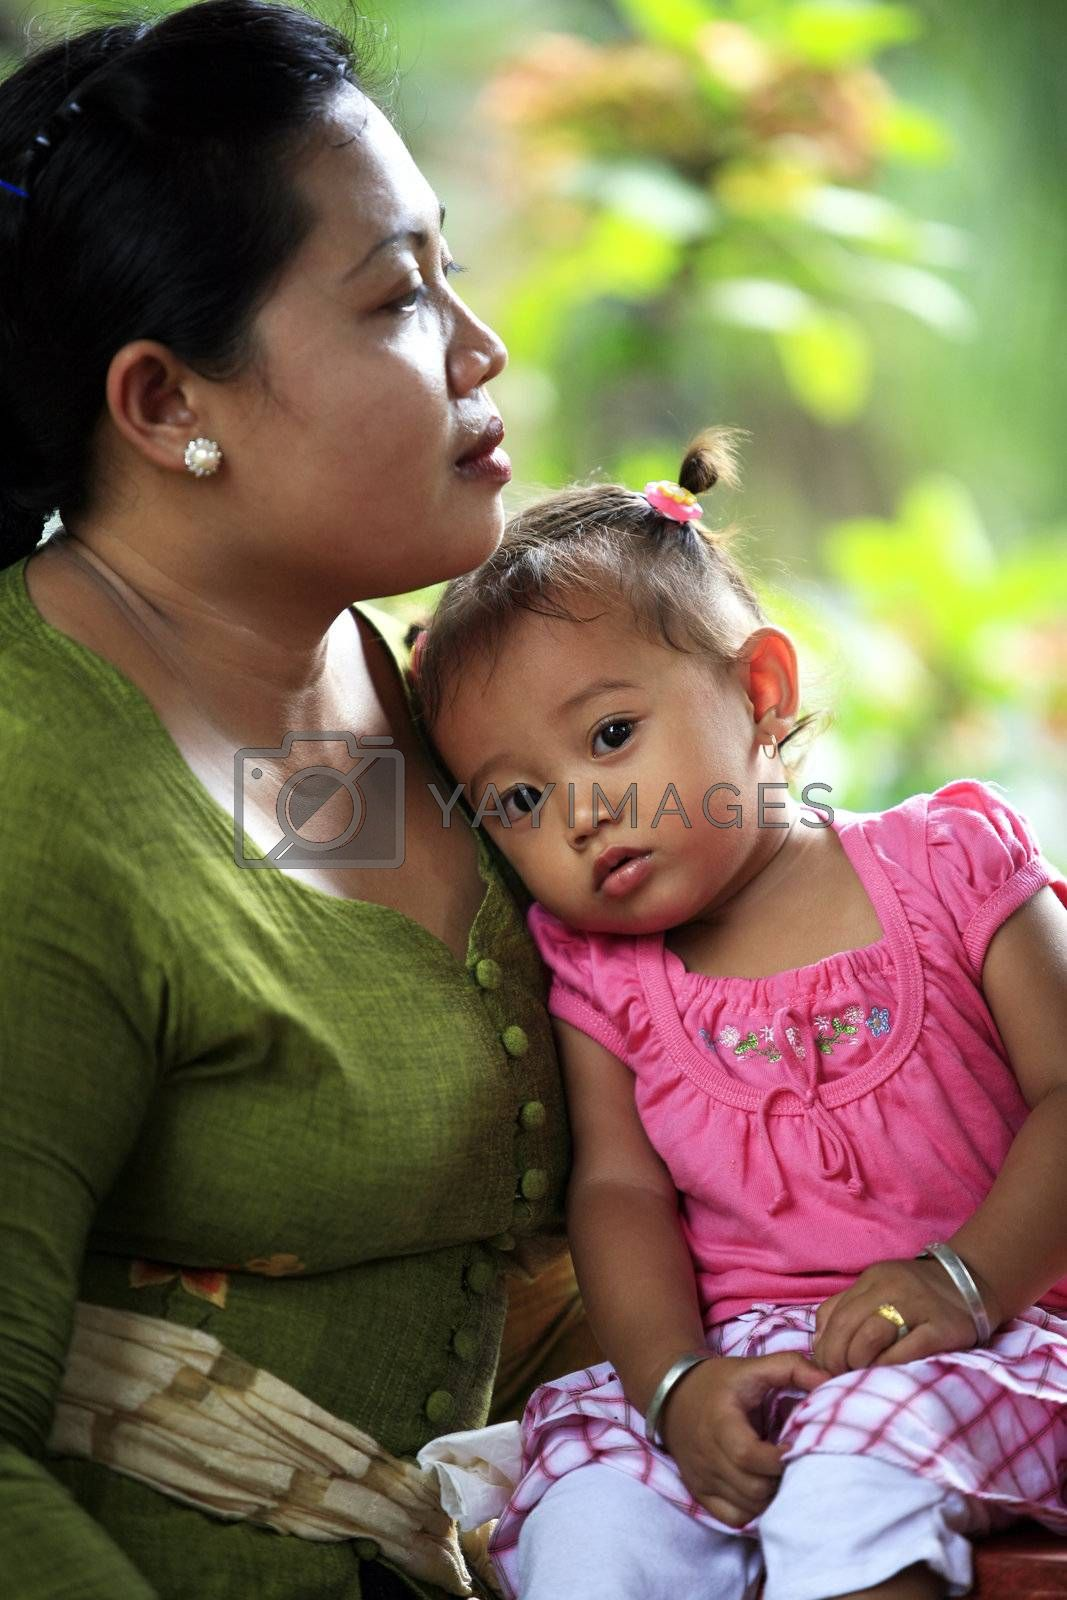 BALI, INDONESIA - OCTOBER 31: Mother with baby. October 14 in Bali, Indonesia